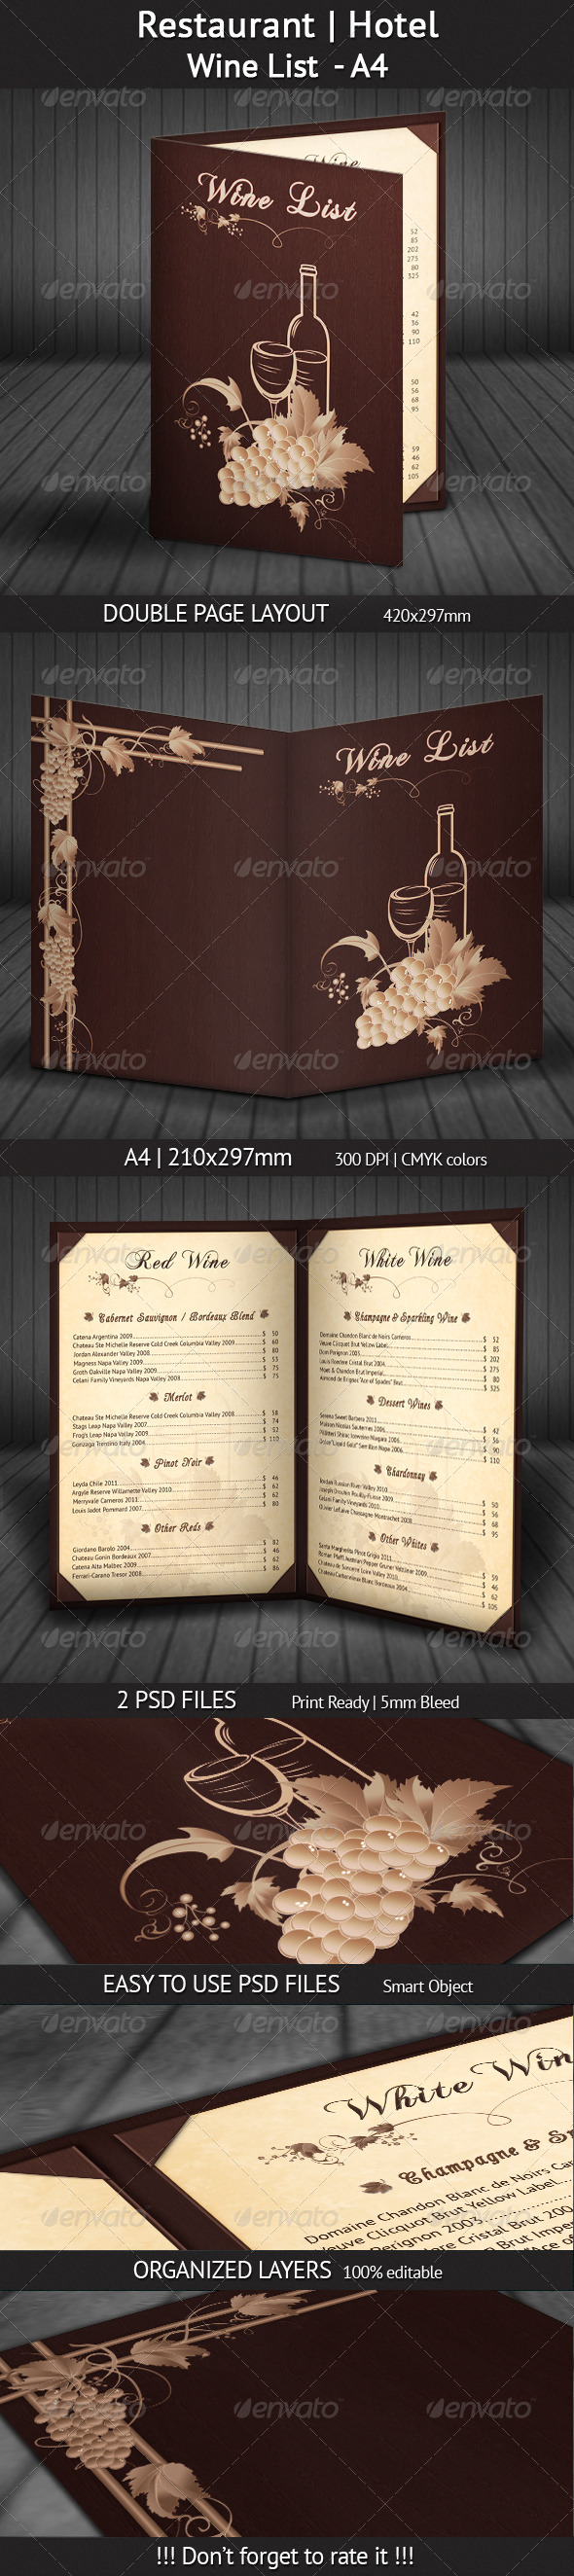 GraphicRiver Restaurant Hotel Wine List A4 4527828